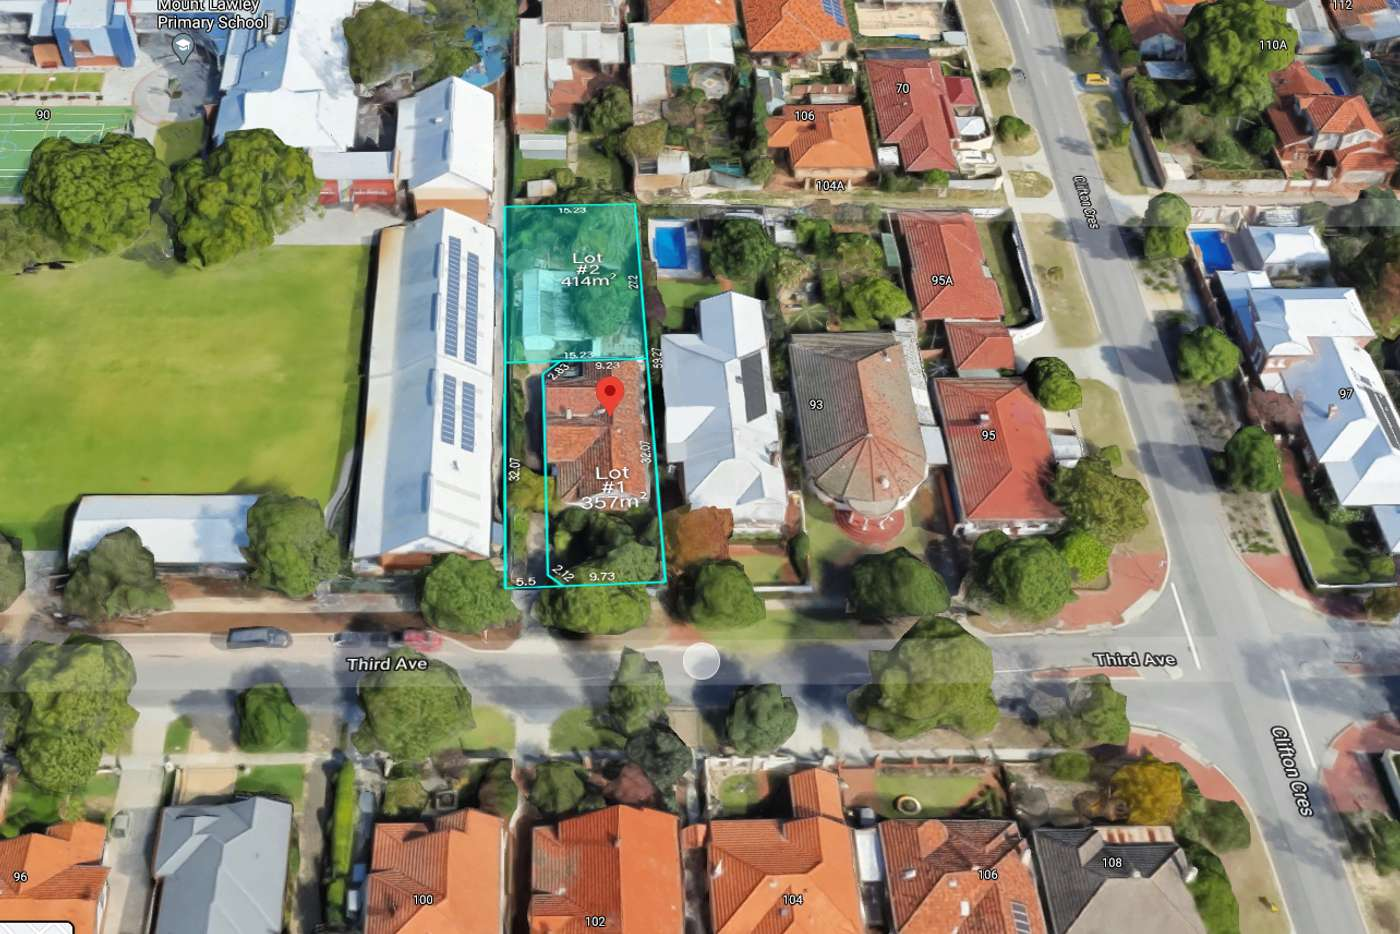 Main view of Homely residentialLand listing, Prop Lot/89A THIRD AVENUE, Mount Lawley WA 6050